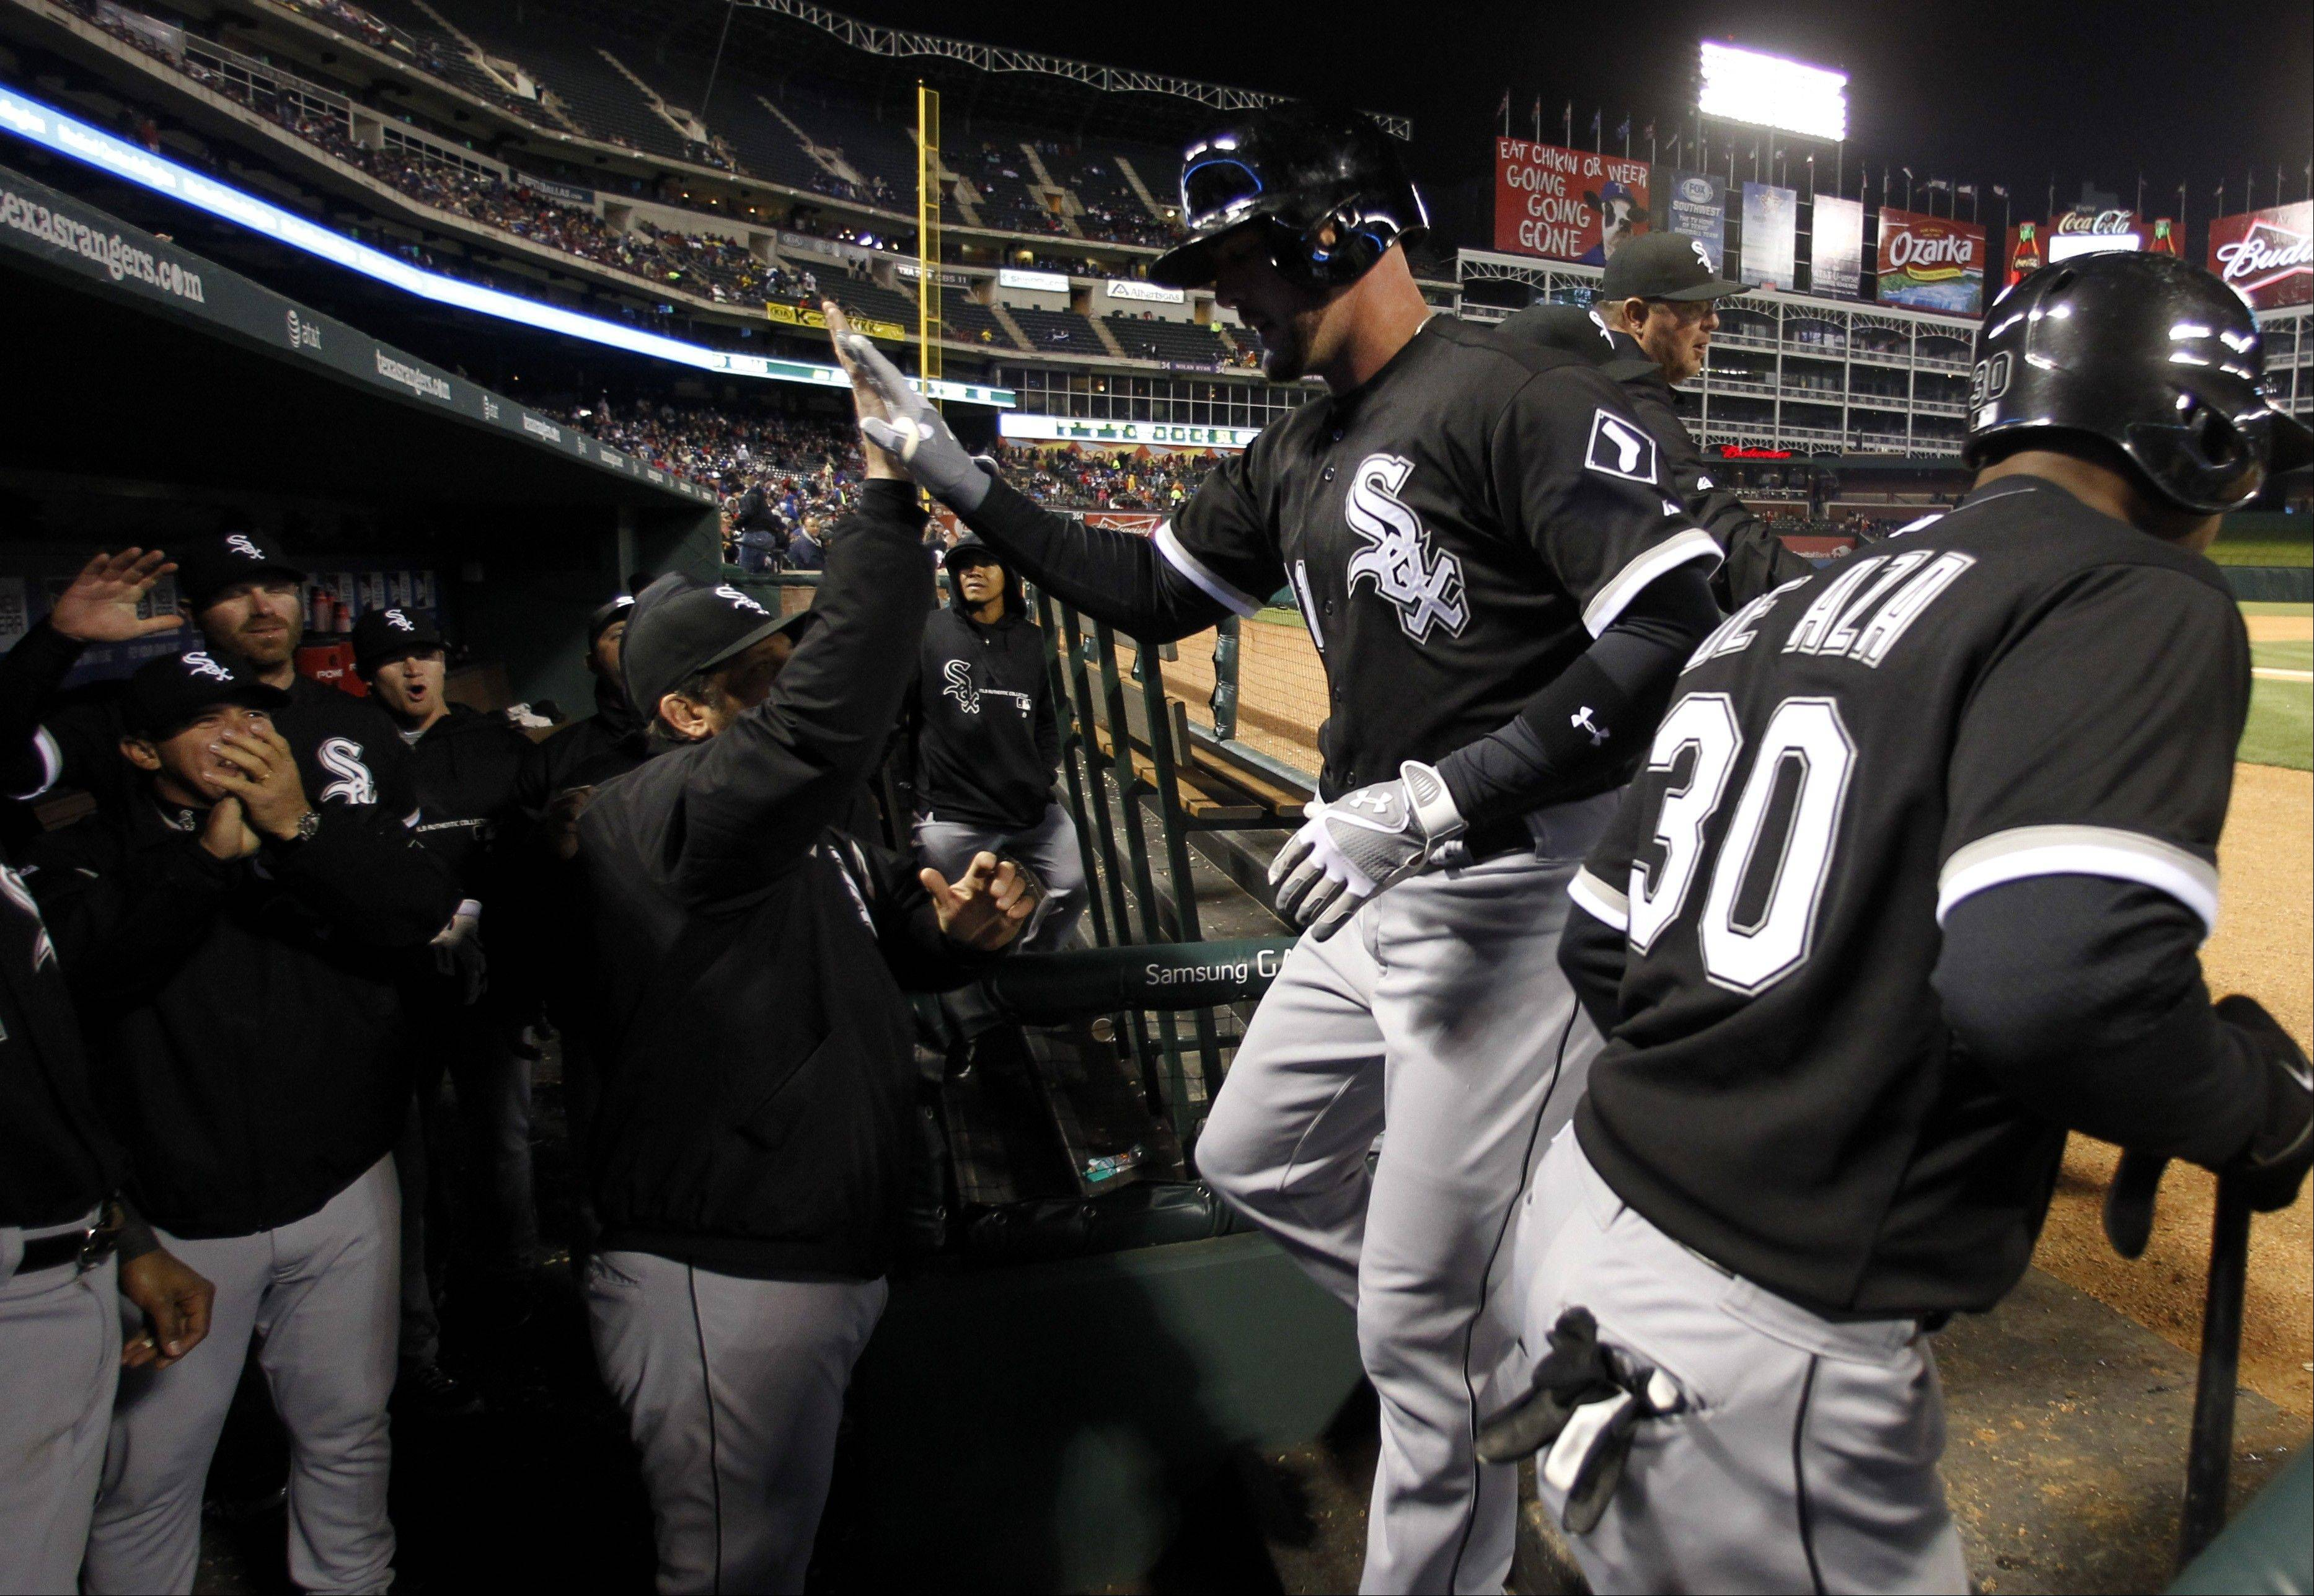 The White Sox's Tyler Flowers, second from right, is congratulated as he reaches the dugout following his three-run home run off Texas Rangers' Justin Grimm in the sixth inning of a baseball game on Thursday in Arlington. The hit also scored Conor Gillaspie and Alexei Ramirez.